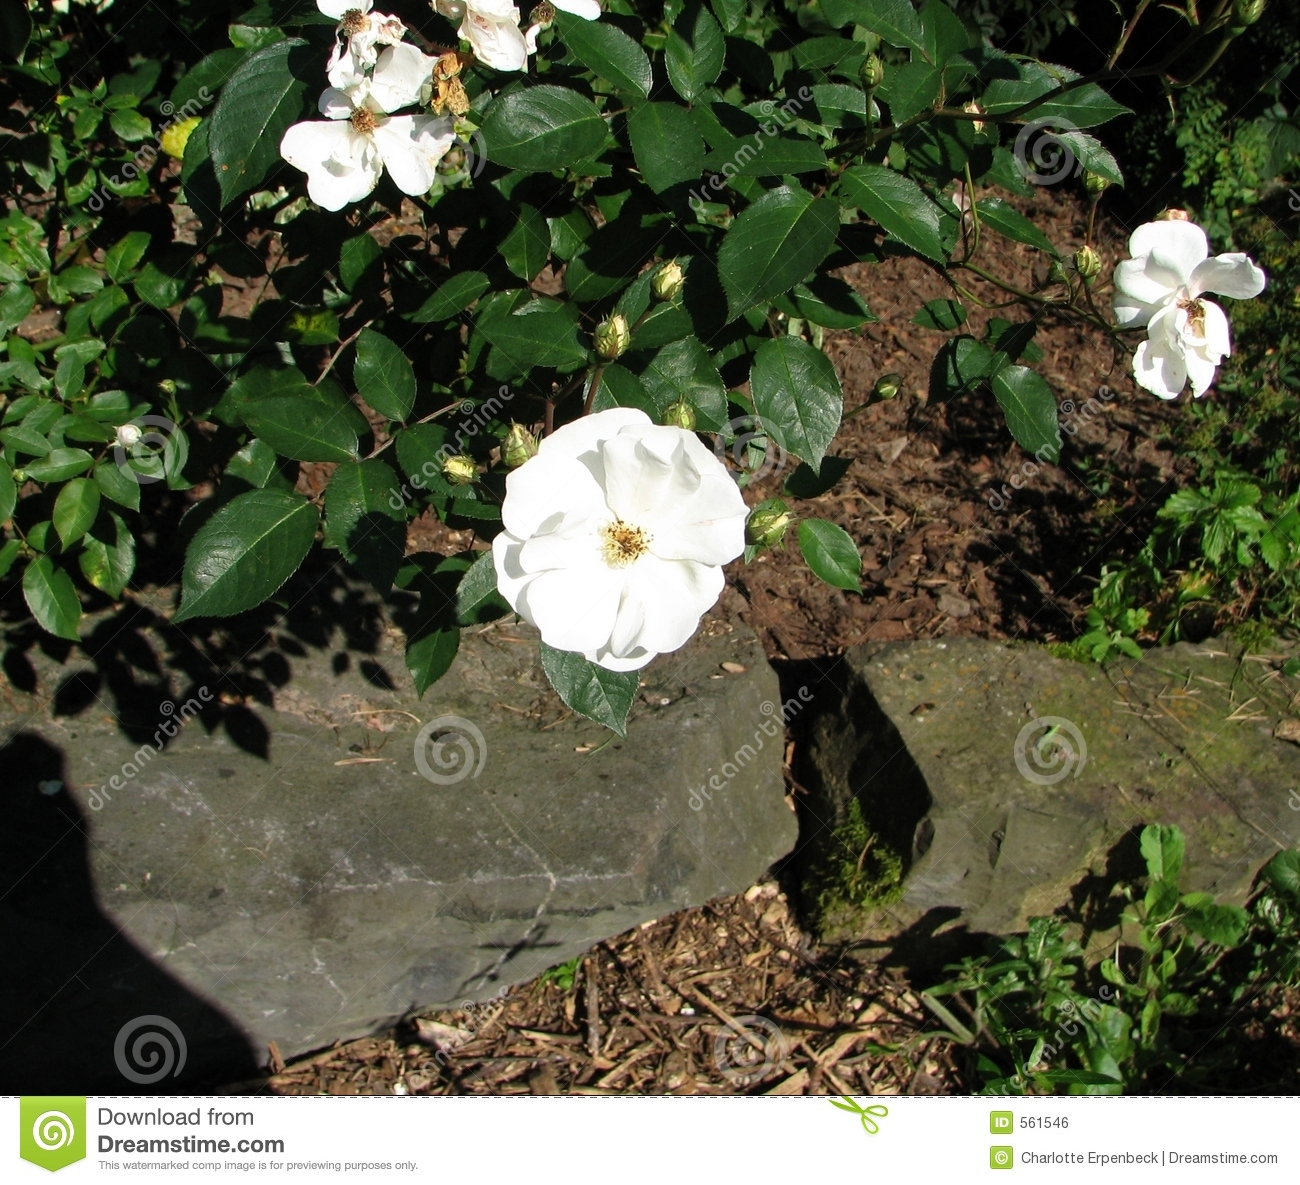 Mulching Roses Bushes: Roses On Mulch Royalty Free Stock Image